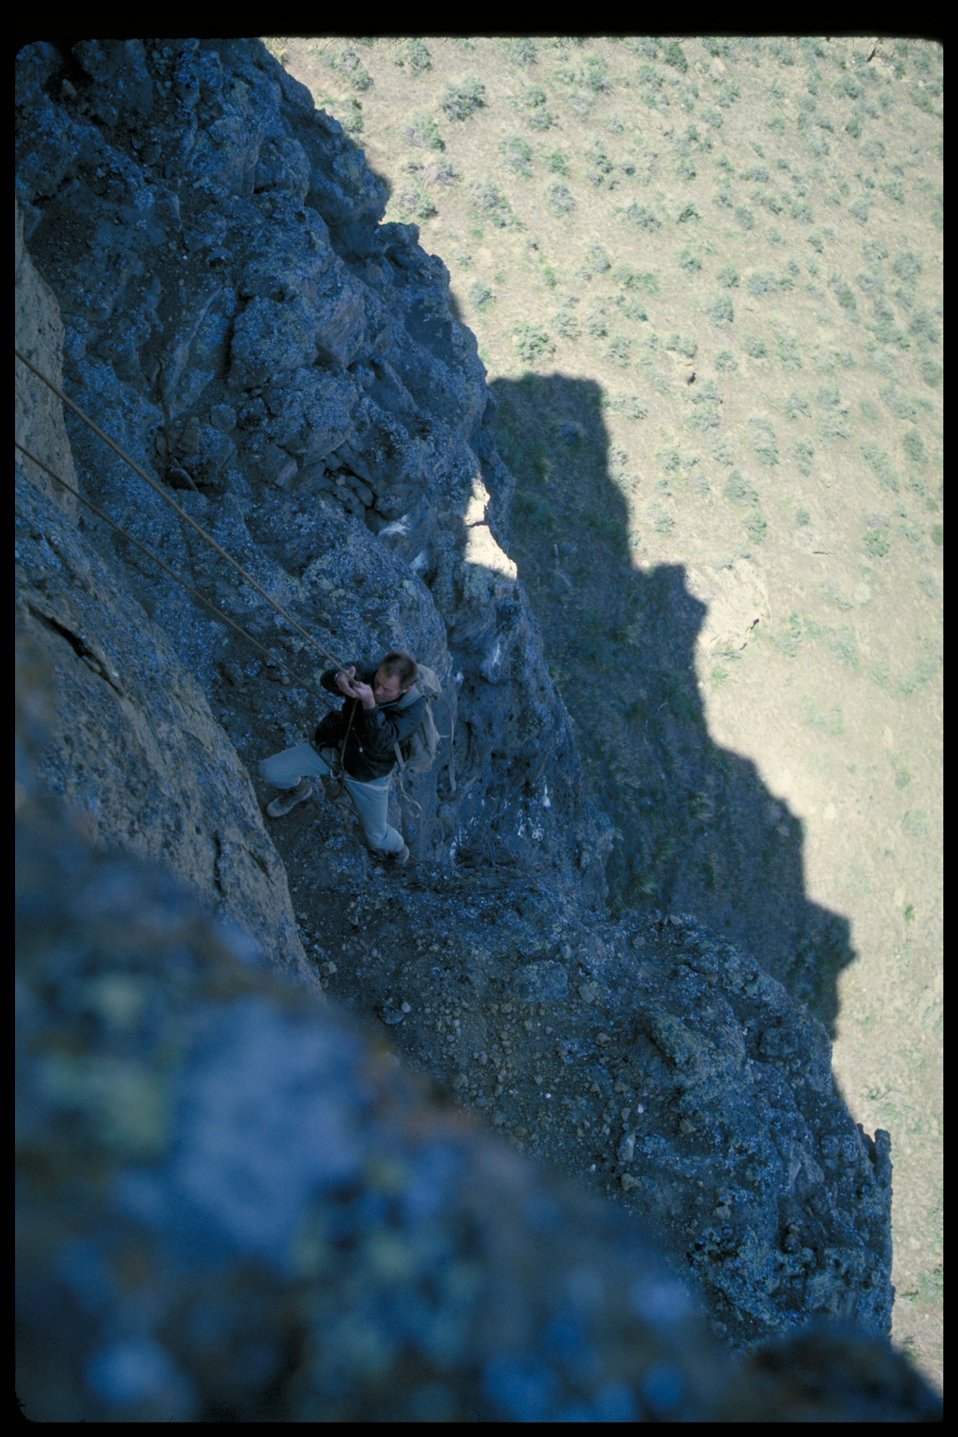 Climbing into Eagle Eyrie in Swan Falls  Birds of Prey National Conservation Area  BOP  Owyhee Field Office  LSRD  Lower Snake River District